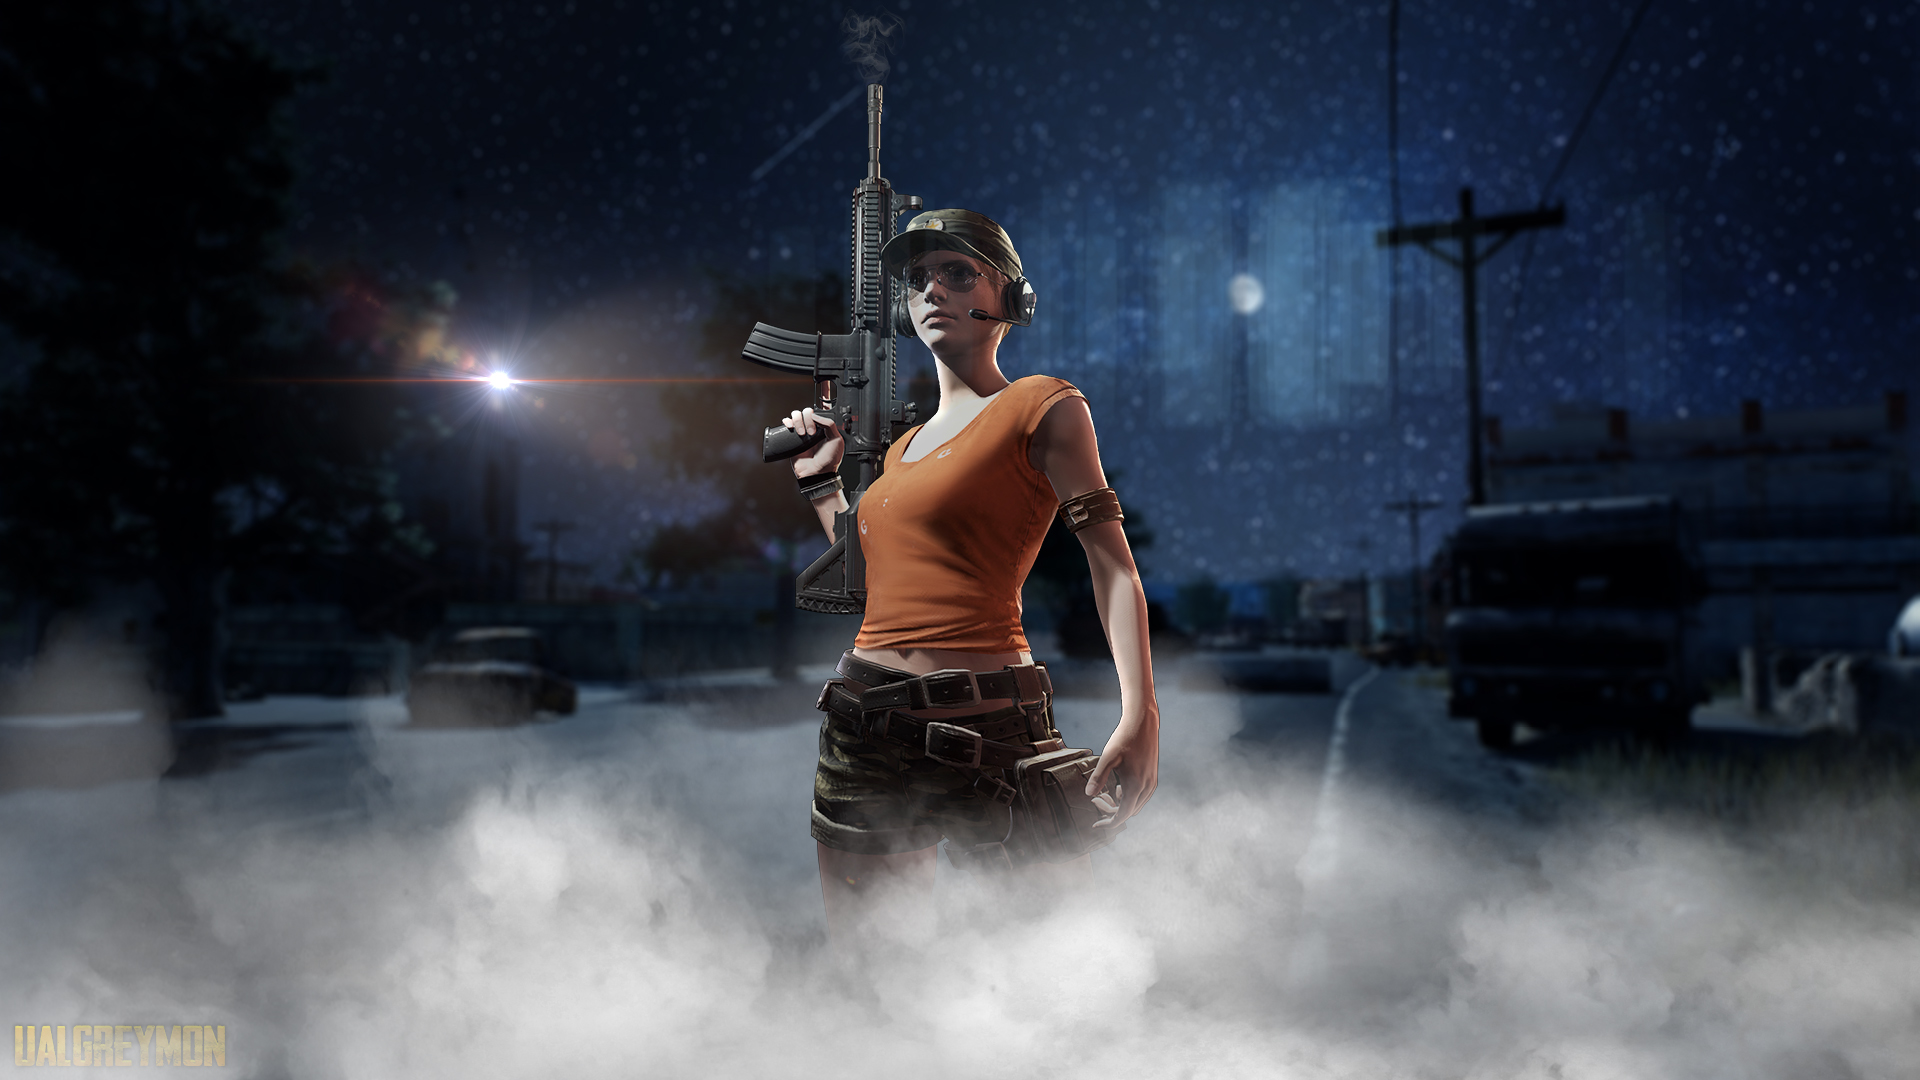 Www Pubg Hd Wallpapers Com: Pubg Night, HD Games, 4k Wallpapers, Images, Backgrounds